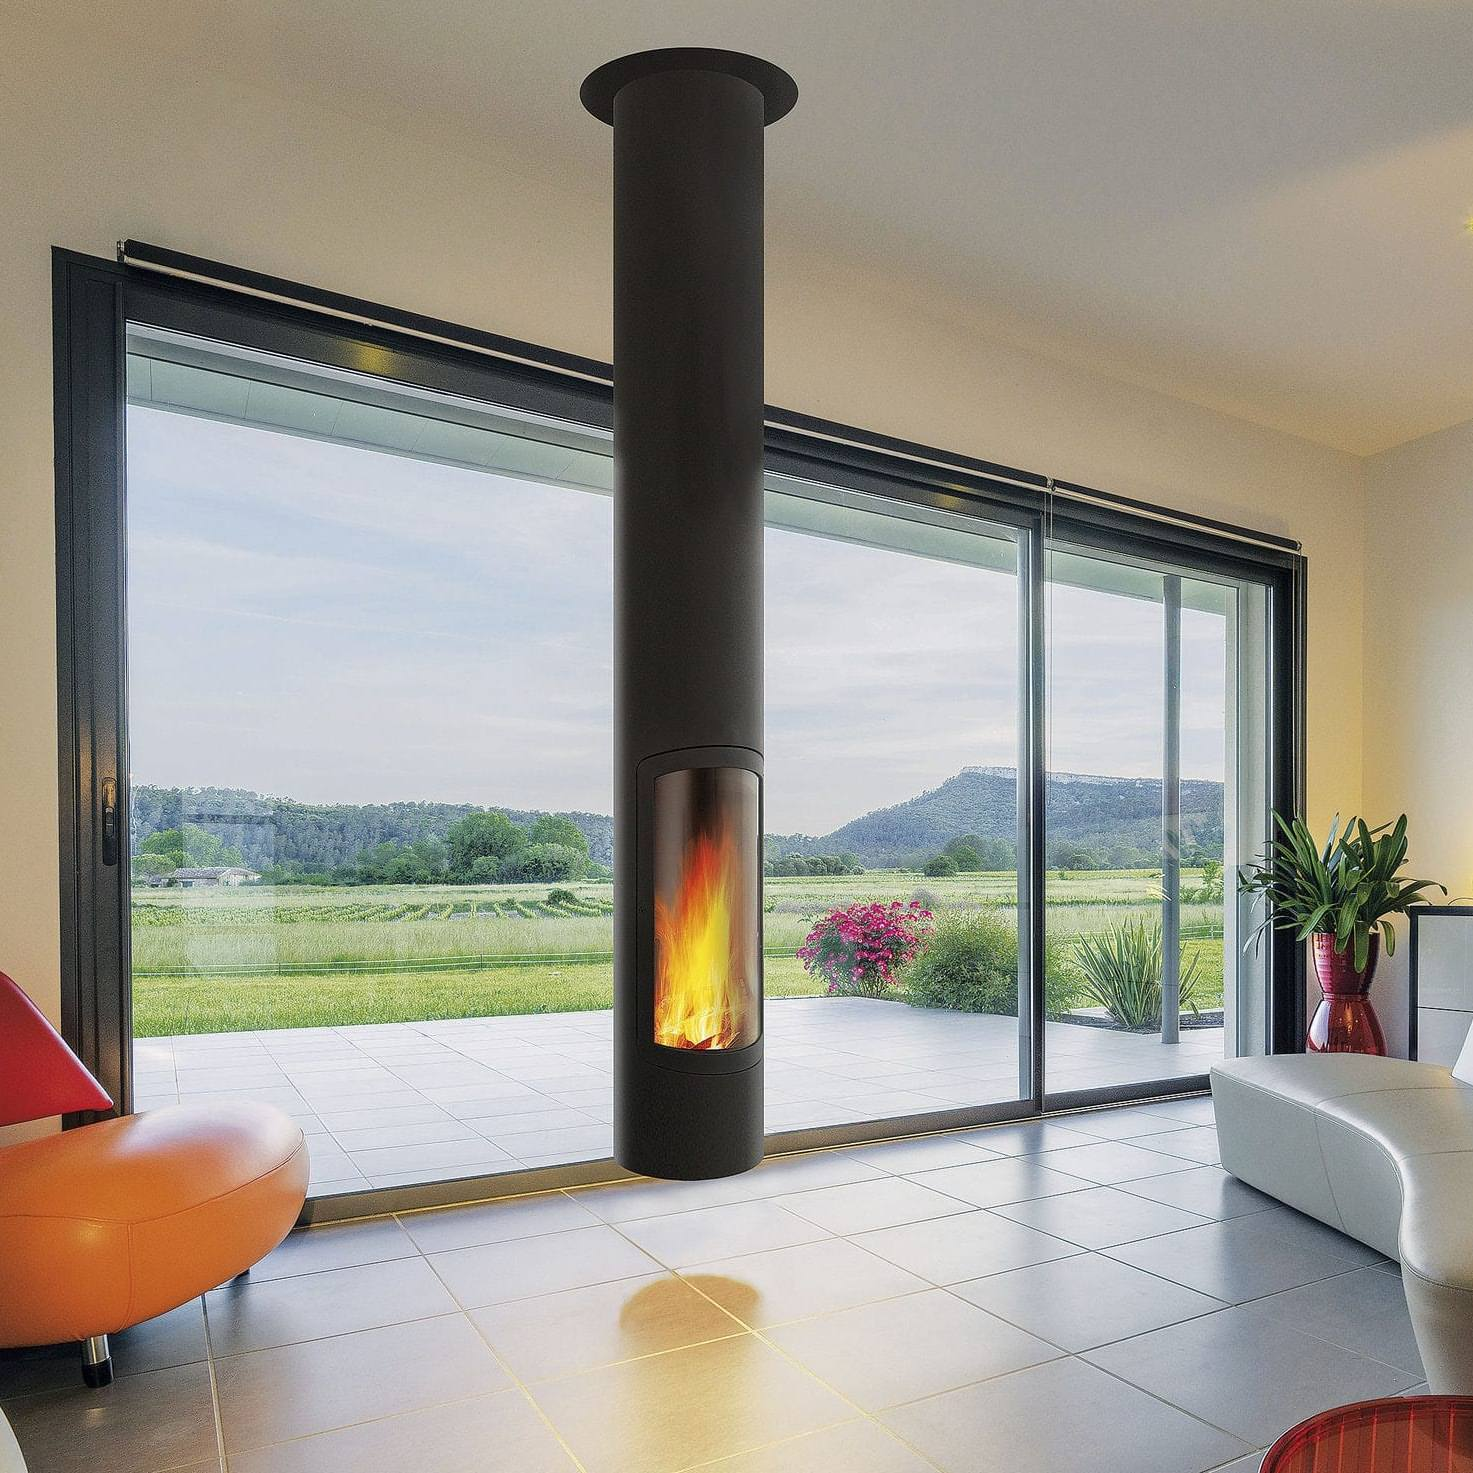 Focus slimfocus from mr stoves brisbane for Stufe regency